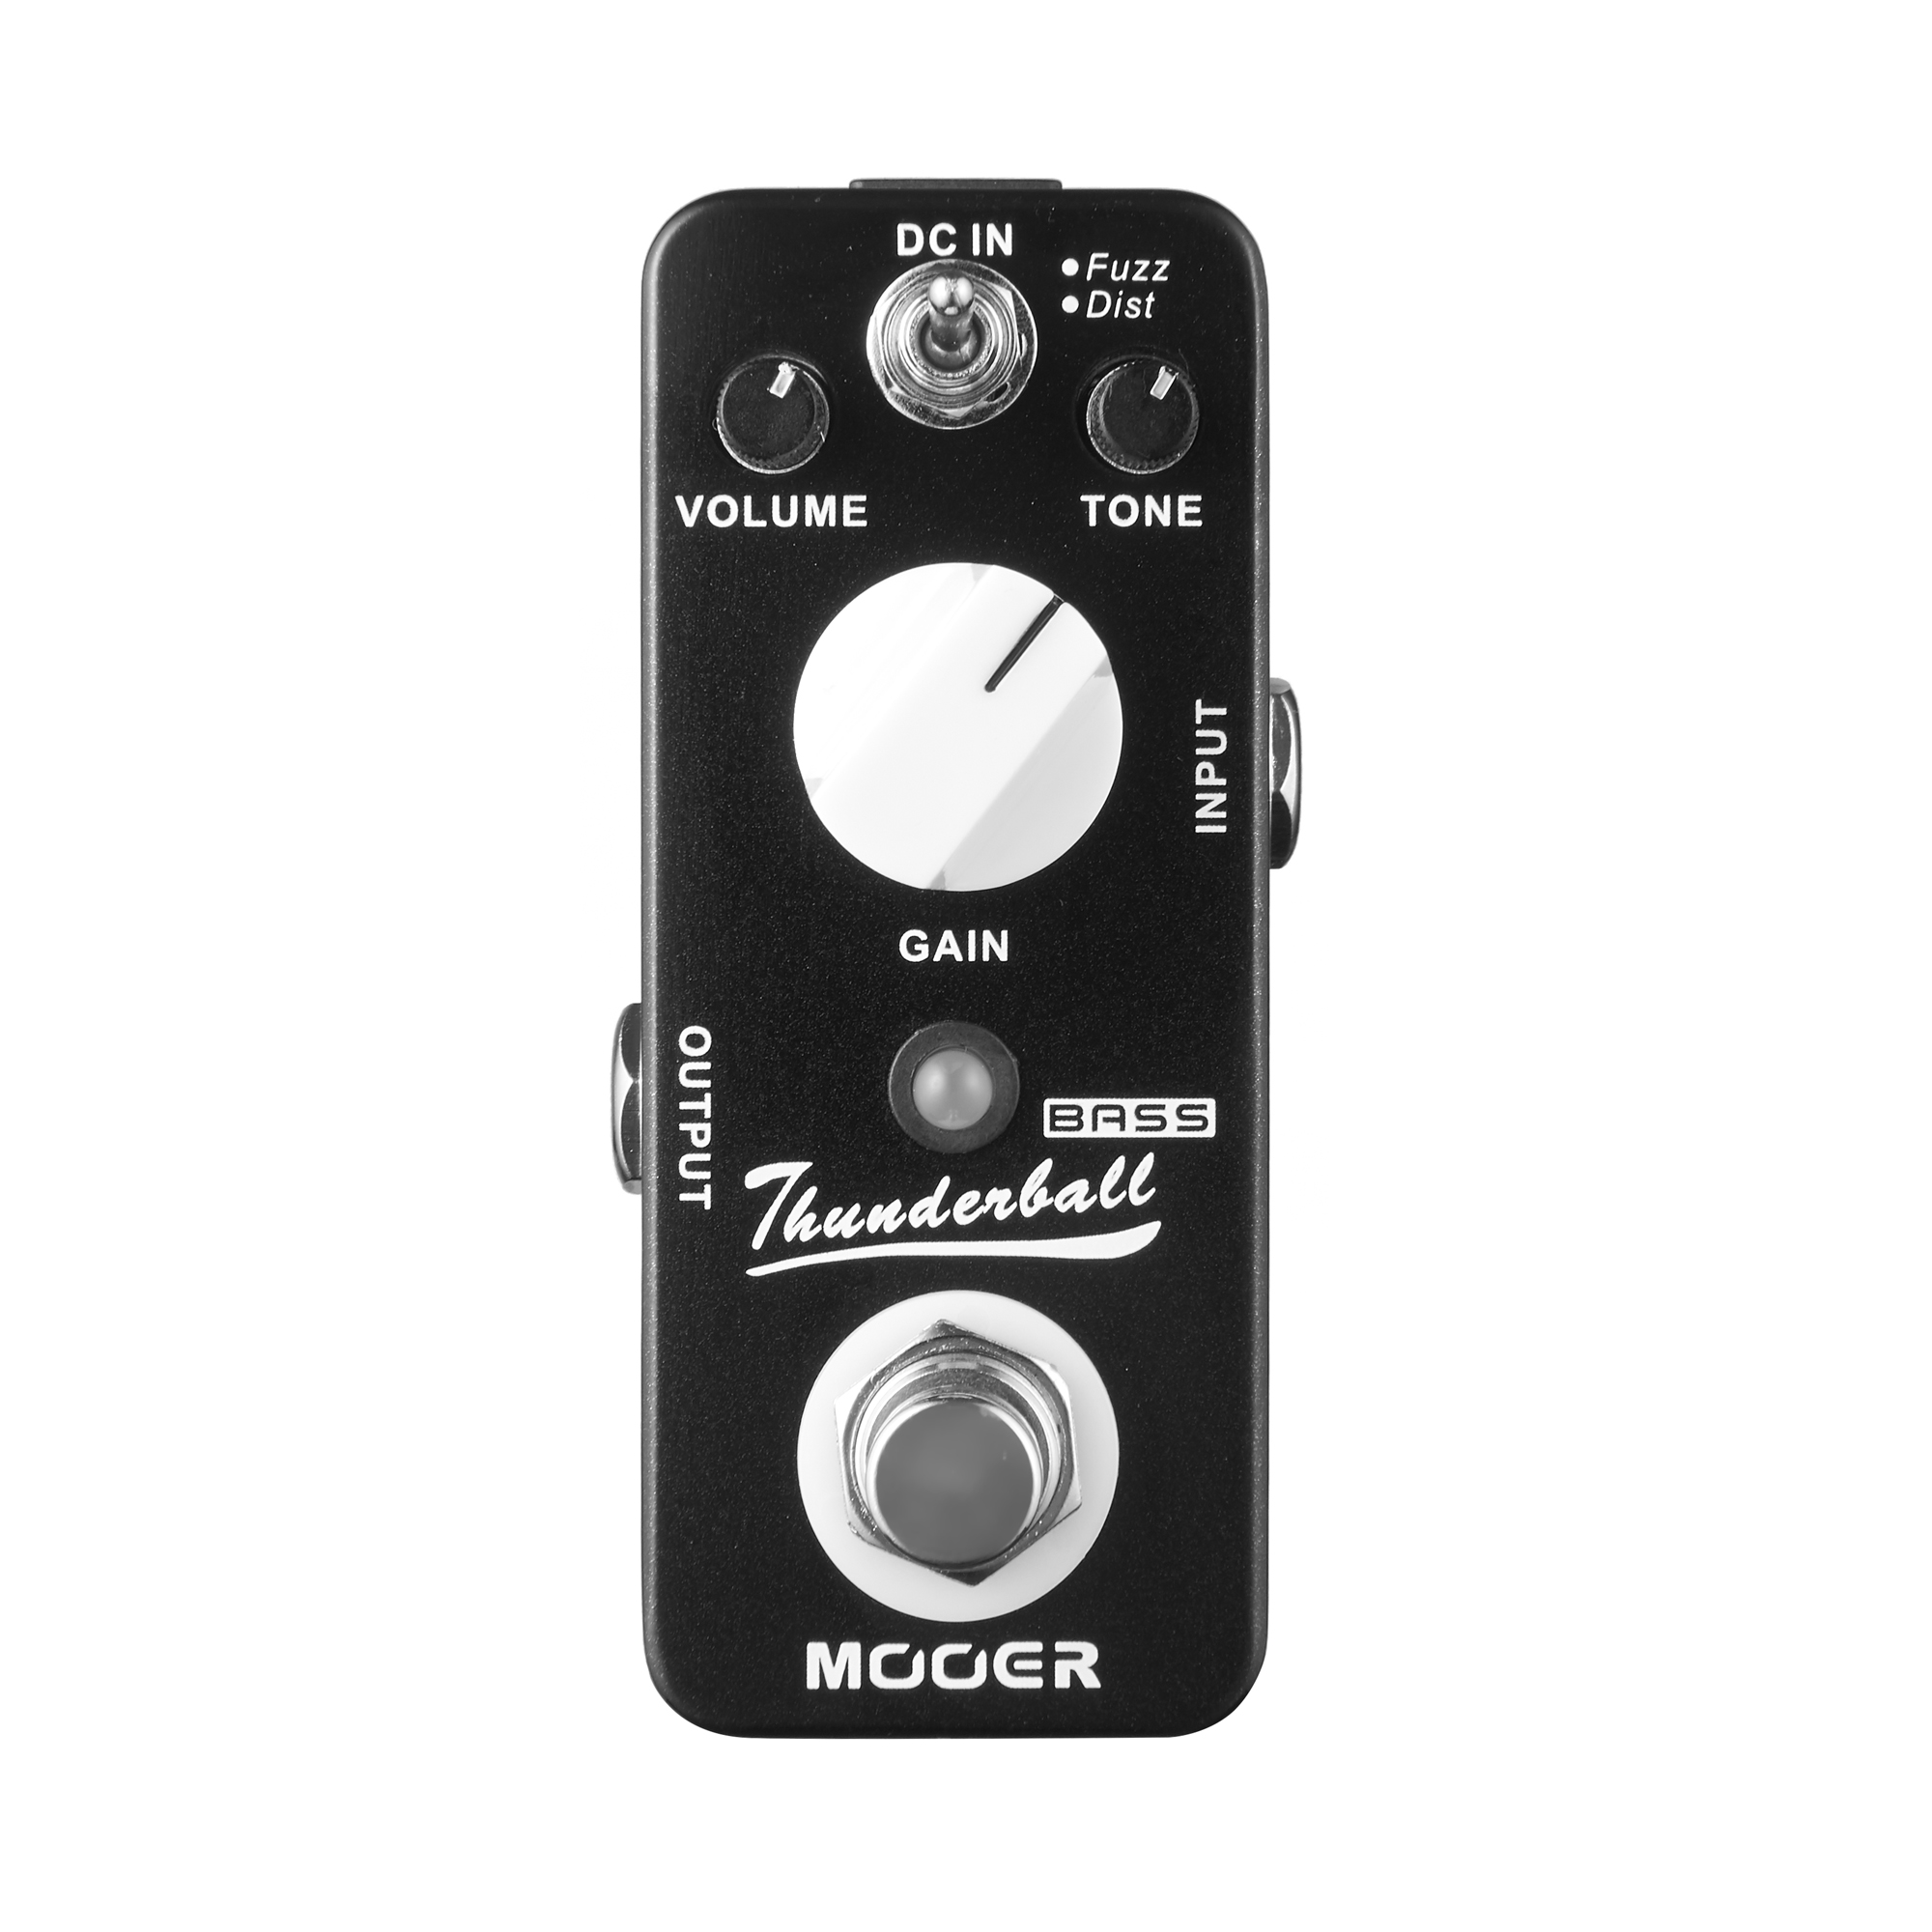 Mooer Thunderball Bass Fuzz Electric Guitar Effect Pedal Fuzz and Dist Modes True Bypass MOD3 mooer ensemble queen bass chorus effects effect pedal true bypass rate knob high quality components depth knob rich sound